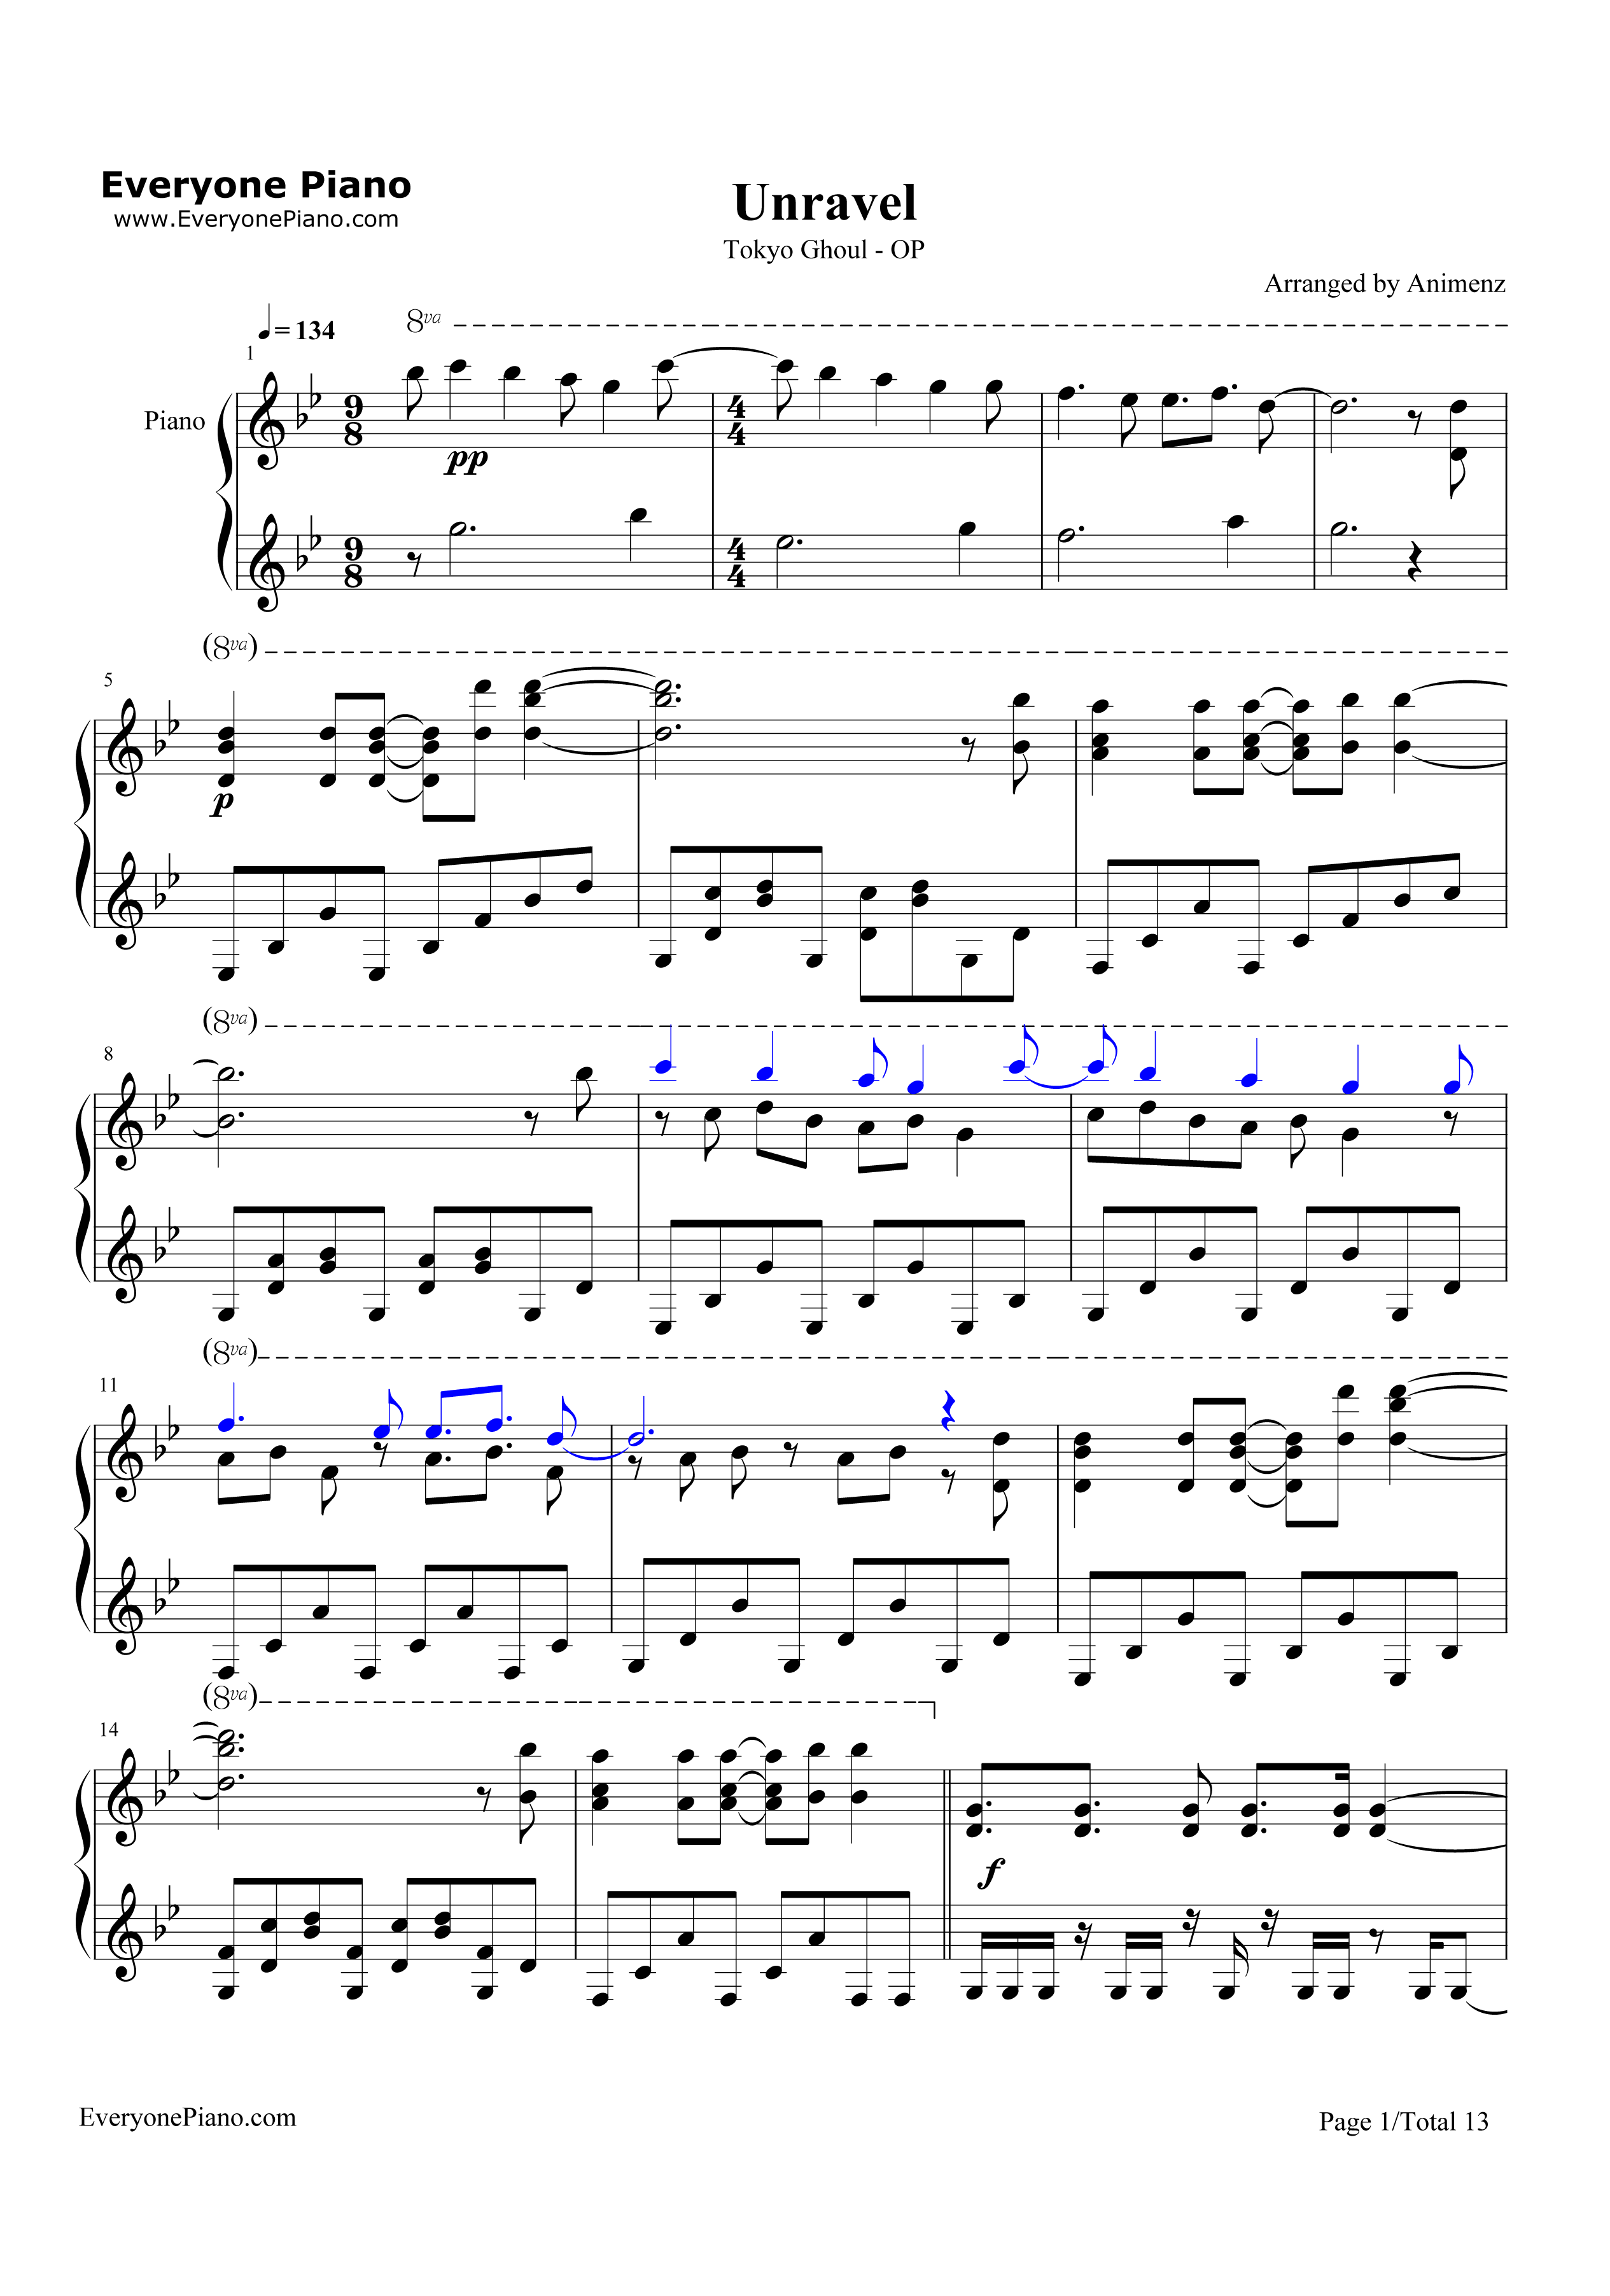 Unravel-Tokyo Ghoul Theme Stave Preview 1-Free Piano Sheet Music u0026 Piano Chords